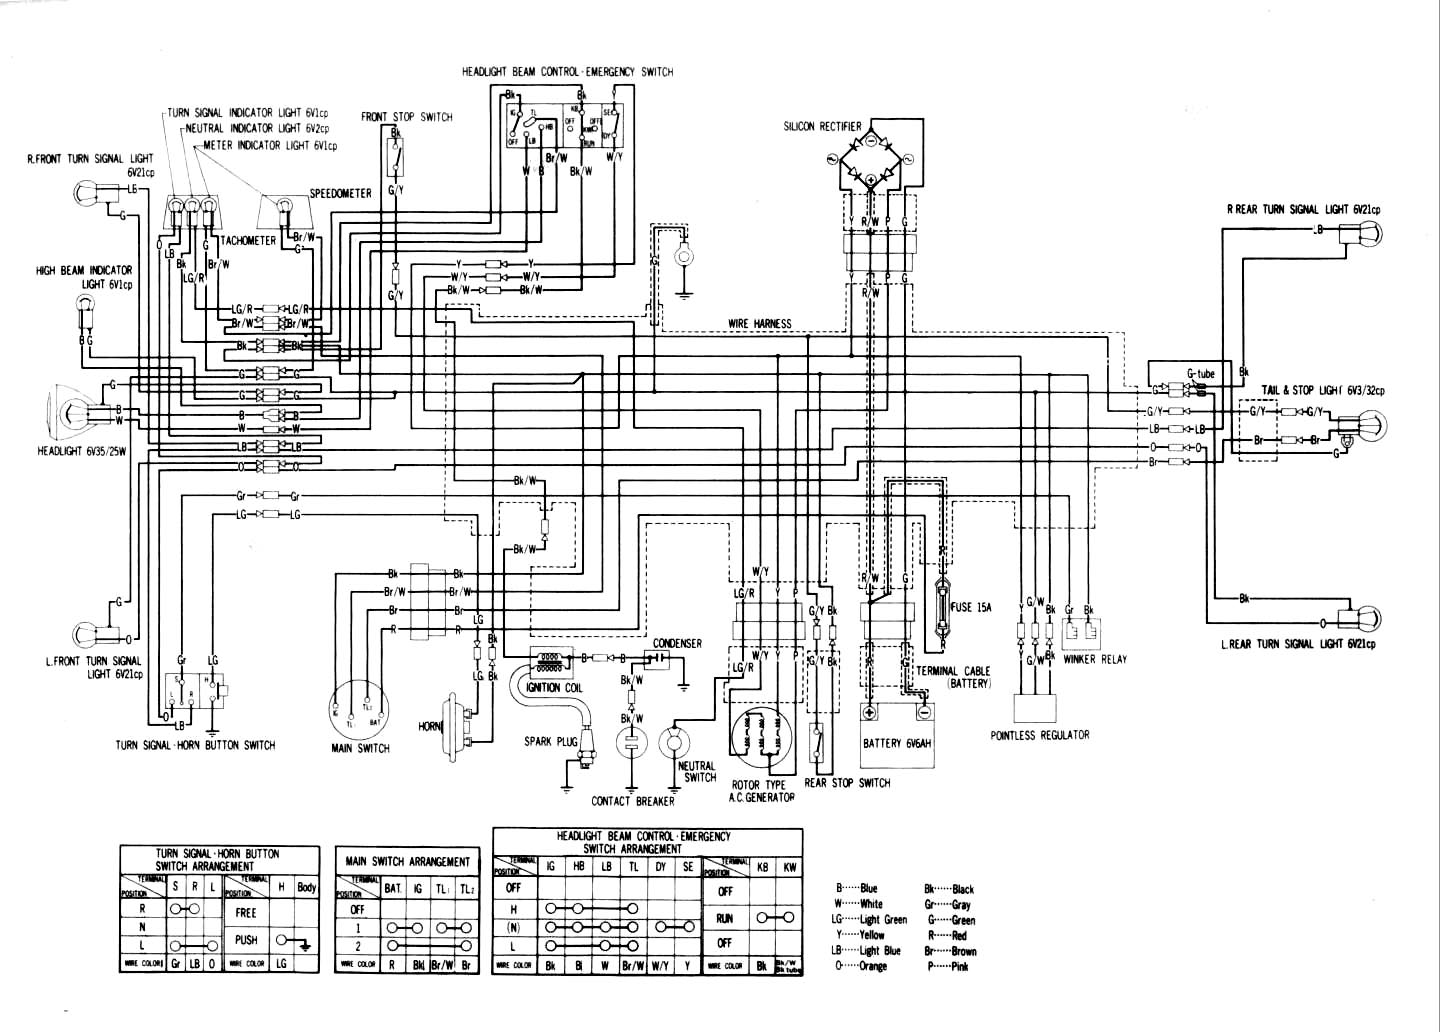 xl175 honda xl 125 wiring diagram 1981 honda xl 125 wiring diagram 1974 honda cb360 wiring diagram at bakdesigns.co